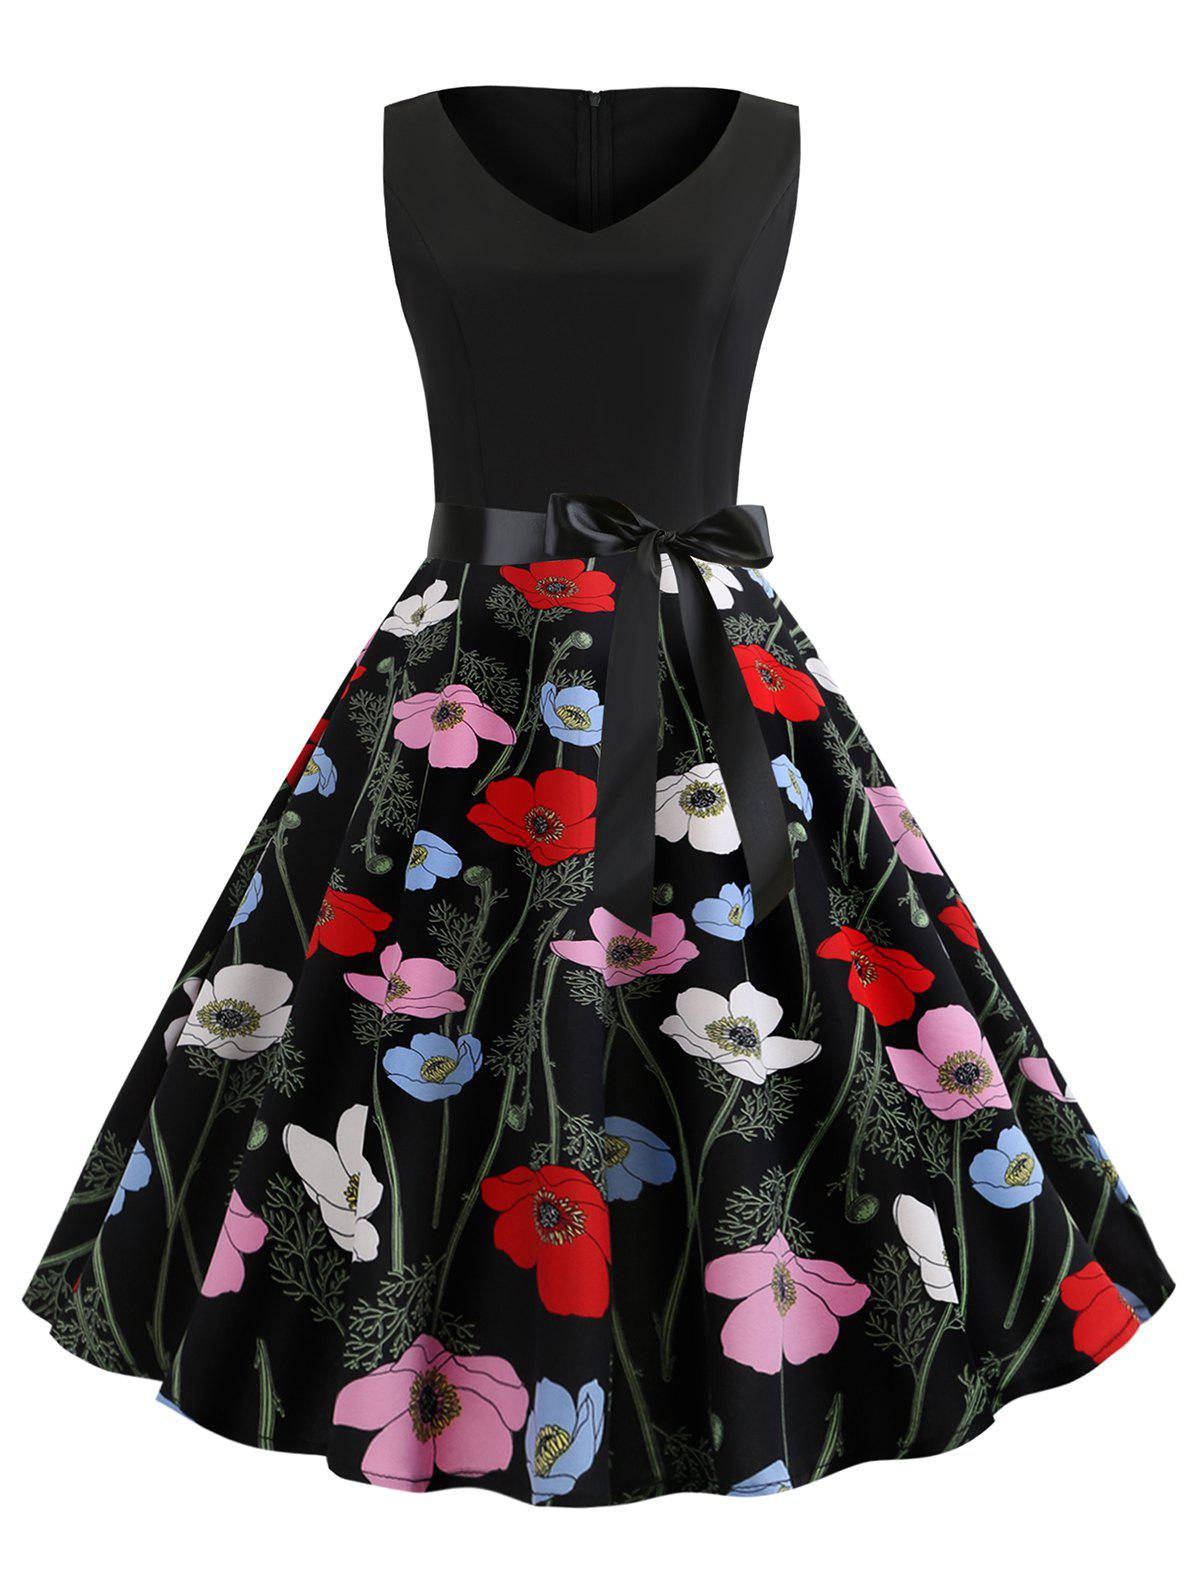 Floral Print Sleeveless A Line Dress with Belt